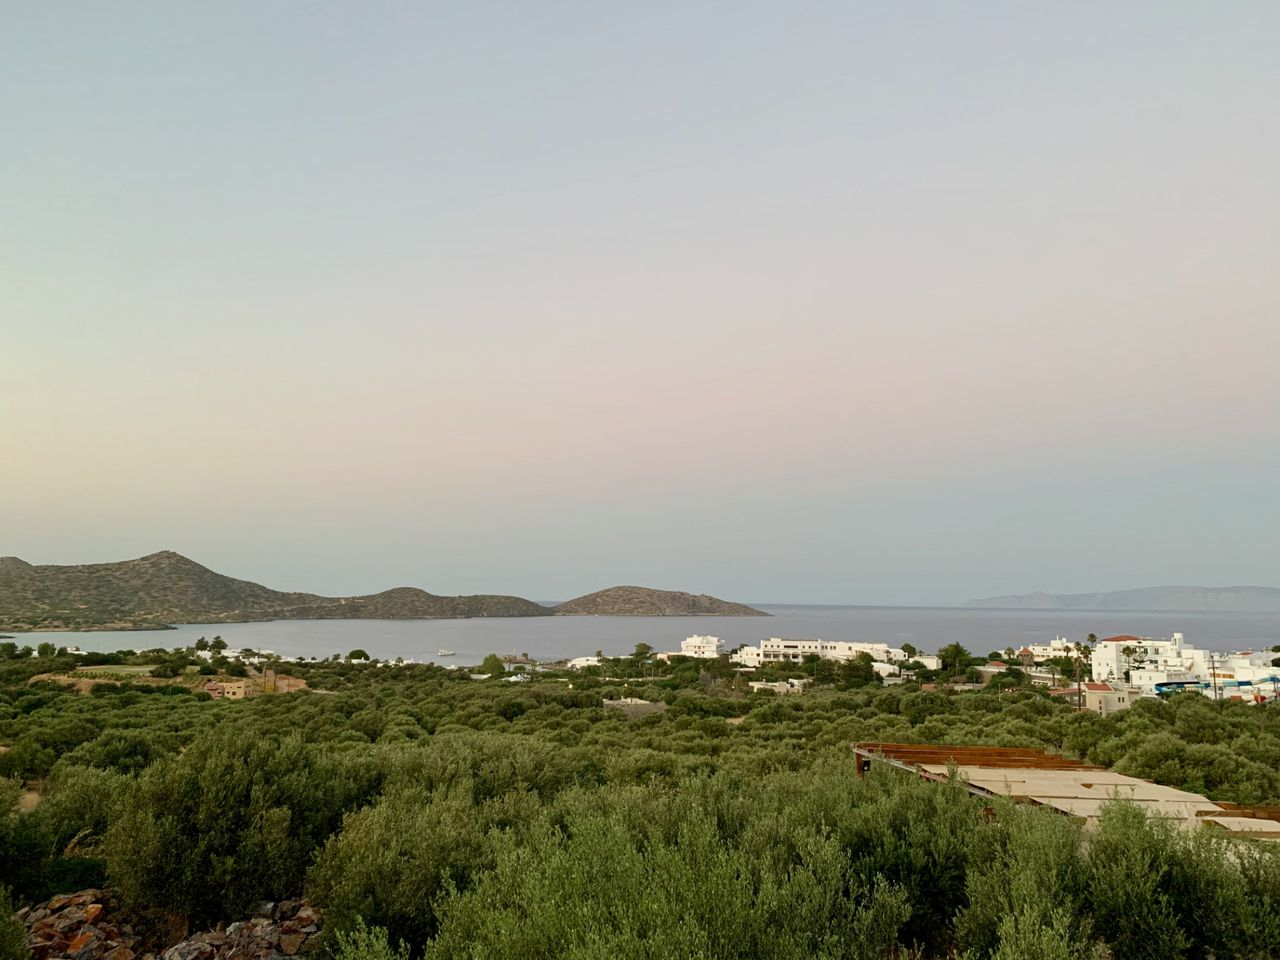 A view from the hills to the area of Elounda